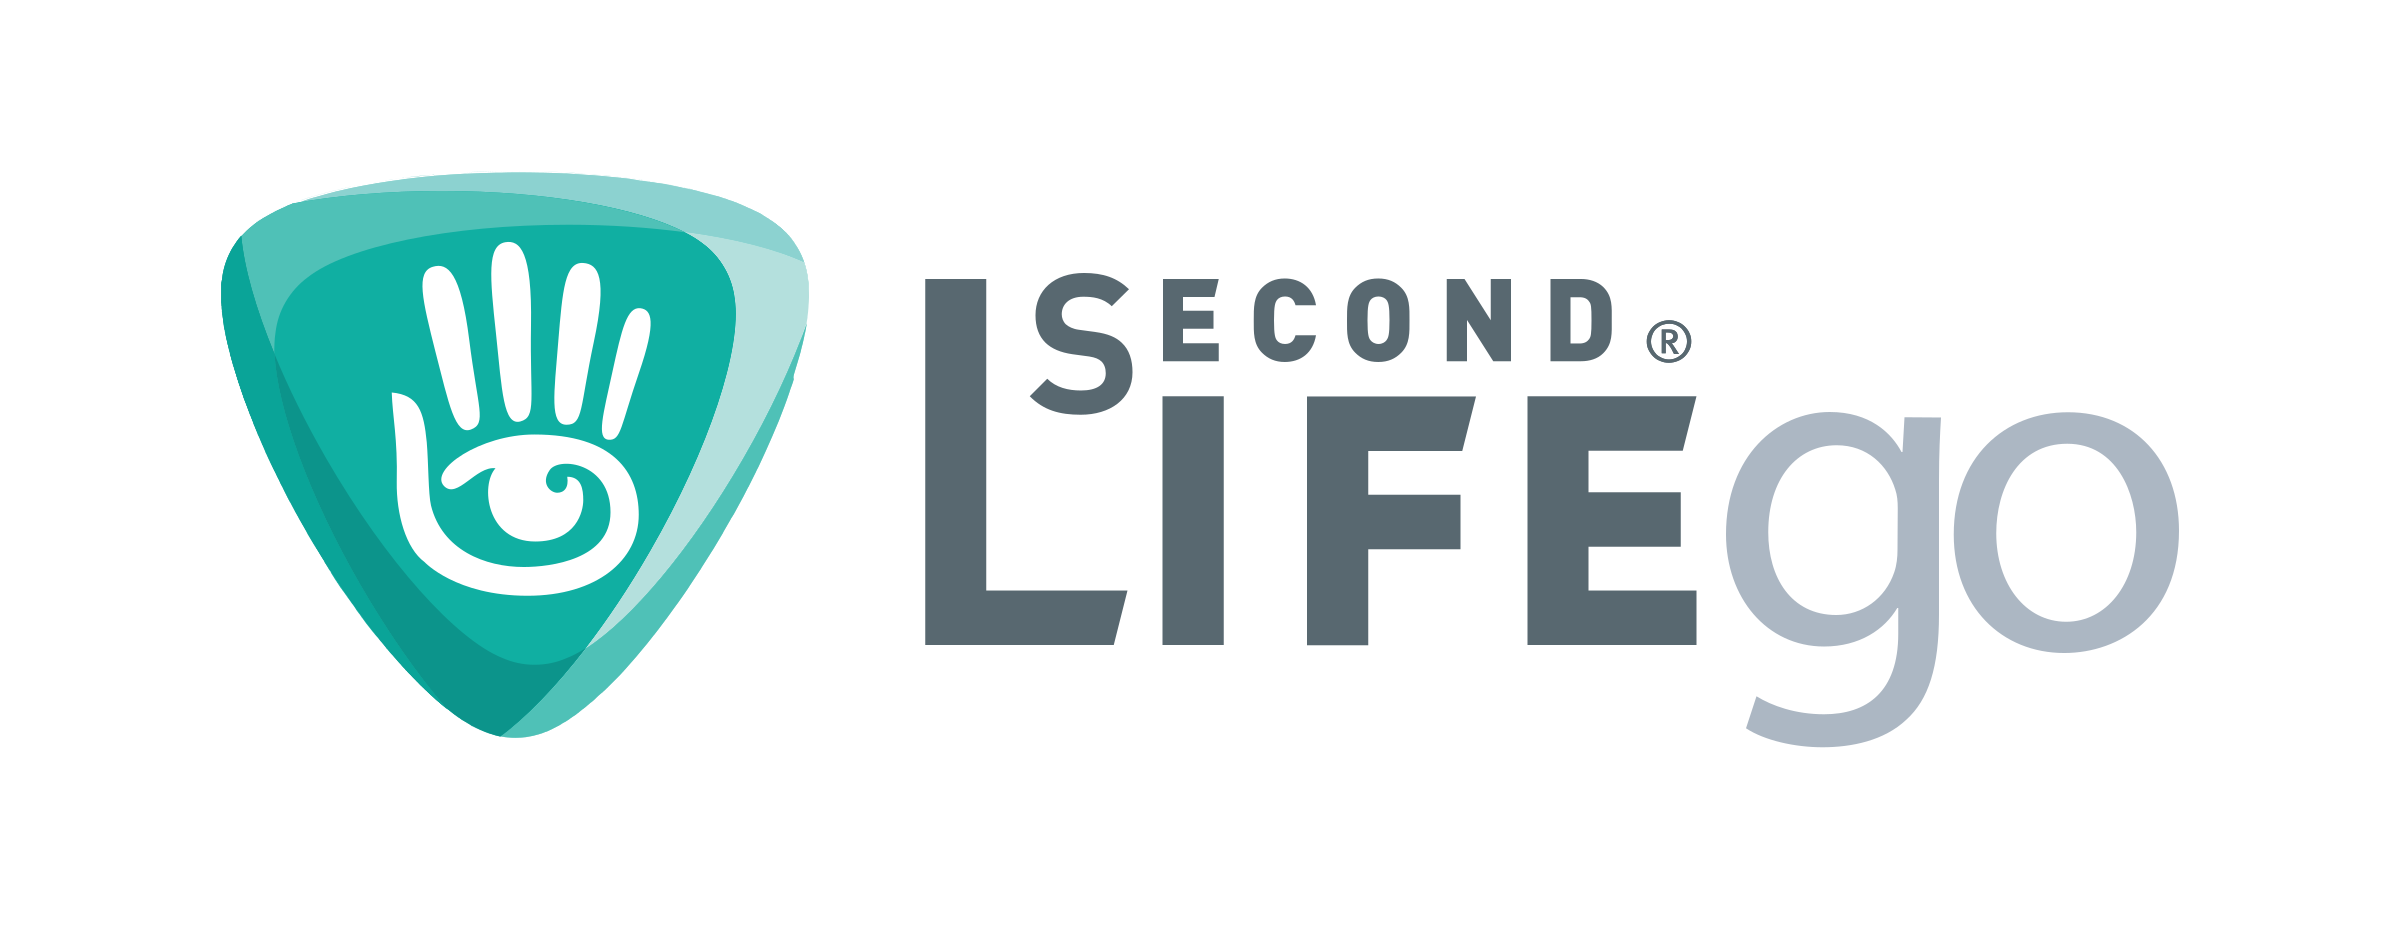 Second life logo clipart png freeuse download Second Life Png - Clip Art Library png freeuse download